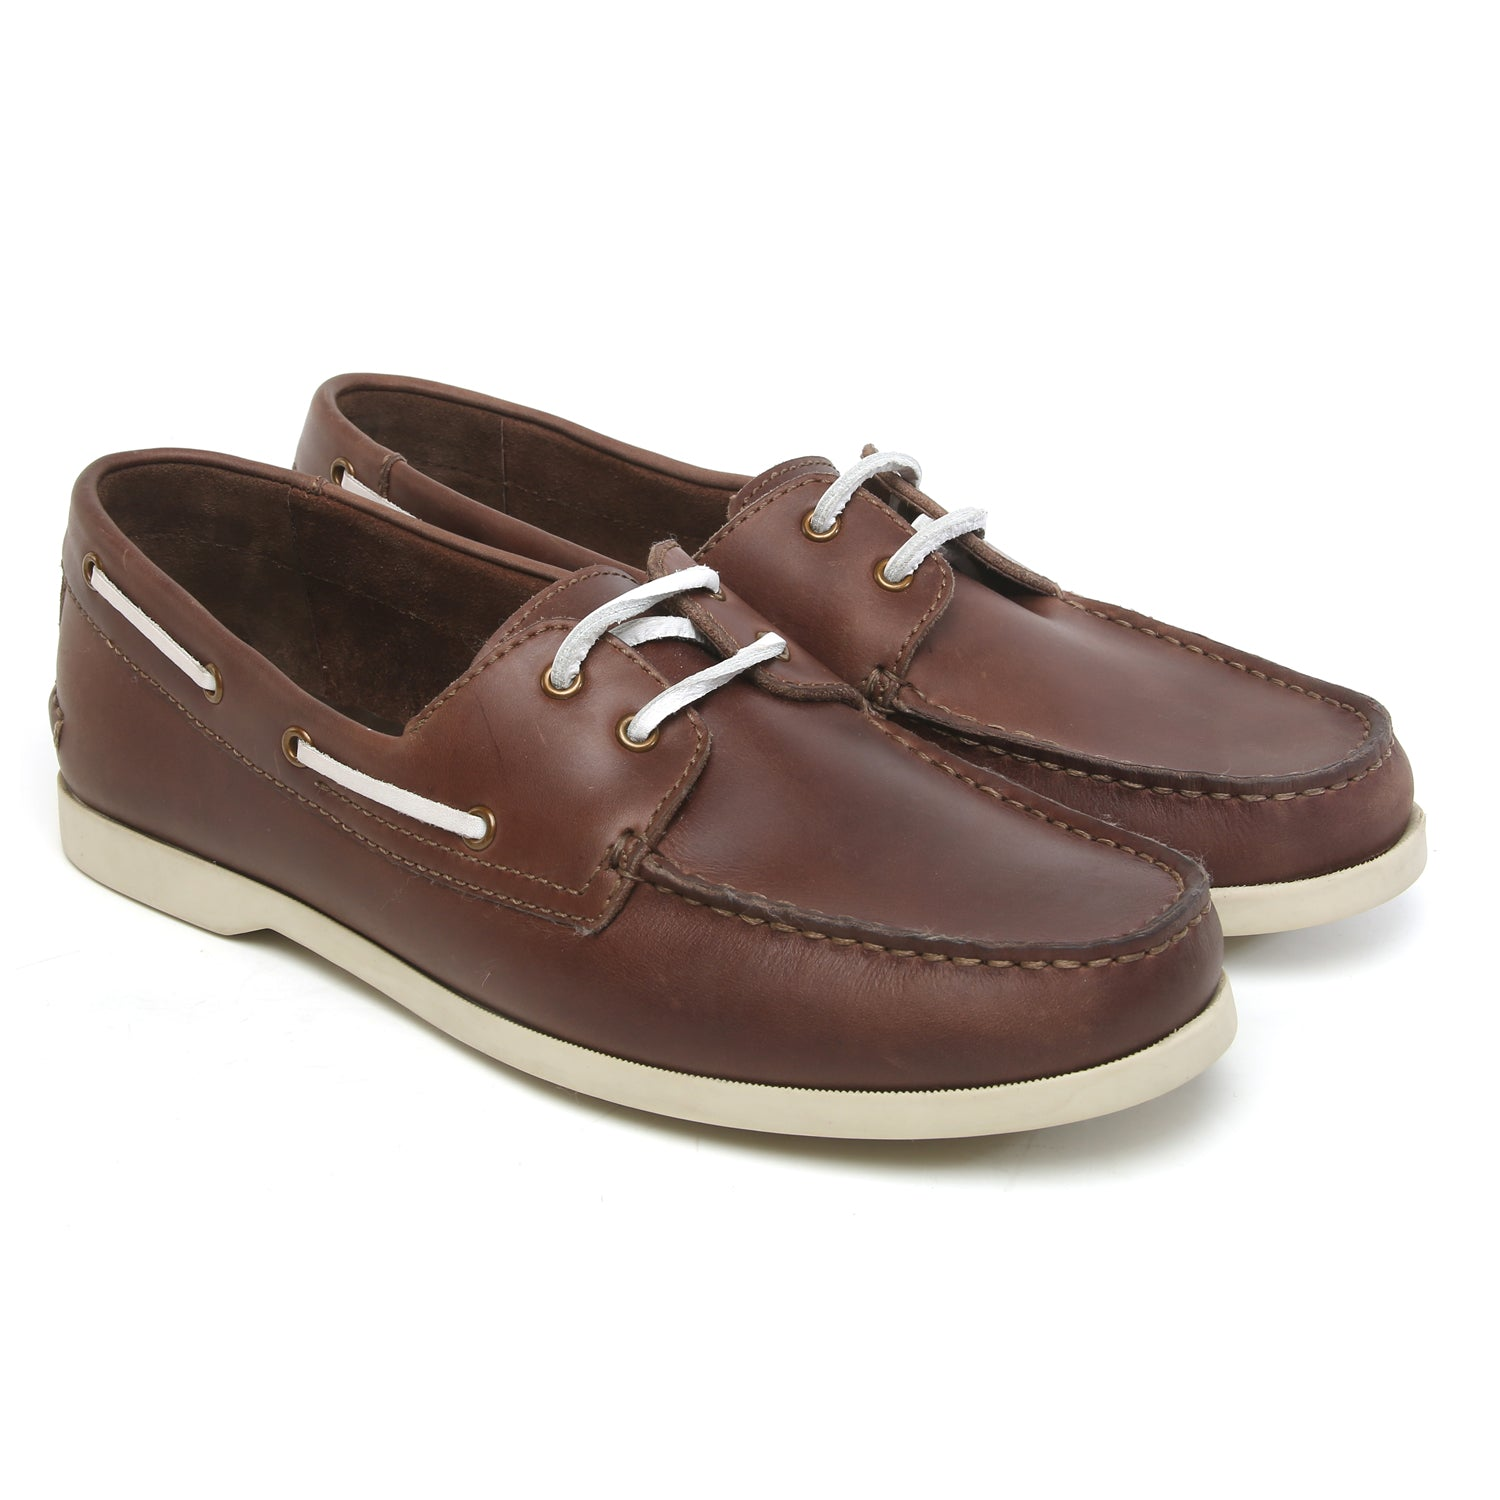 California Dreamin' Classic Brown Boat Shoe